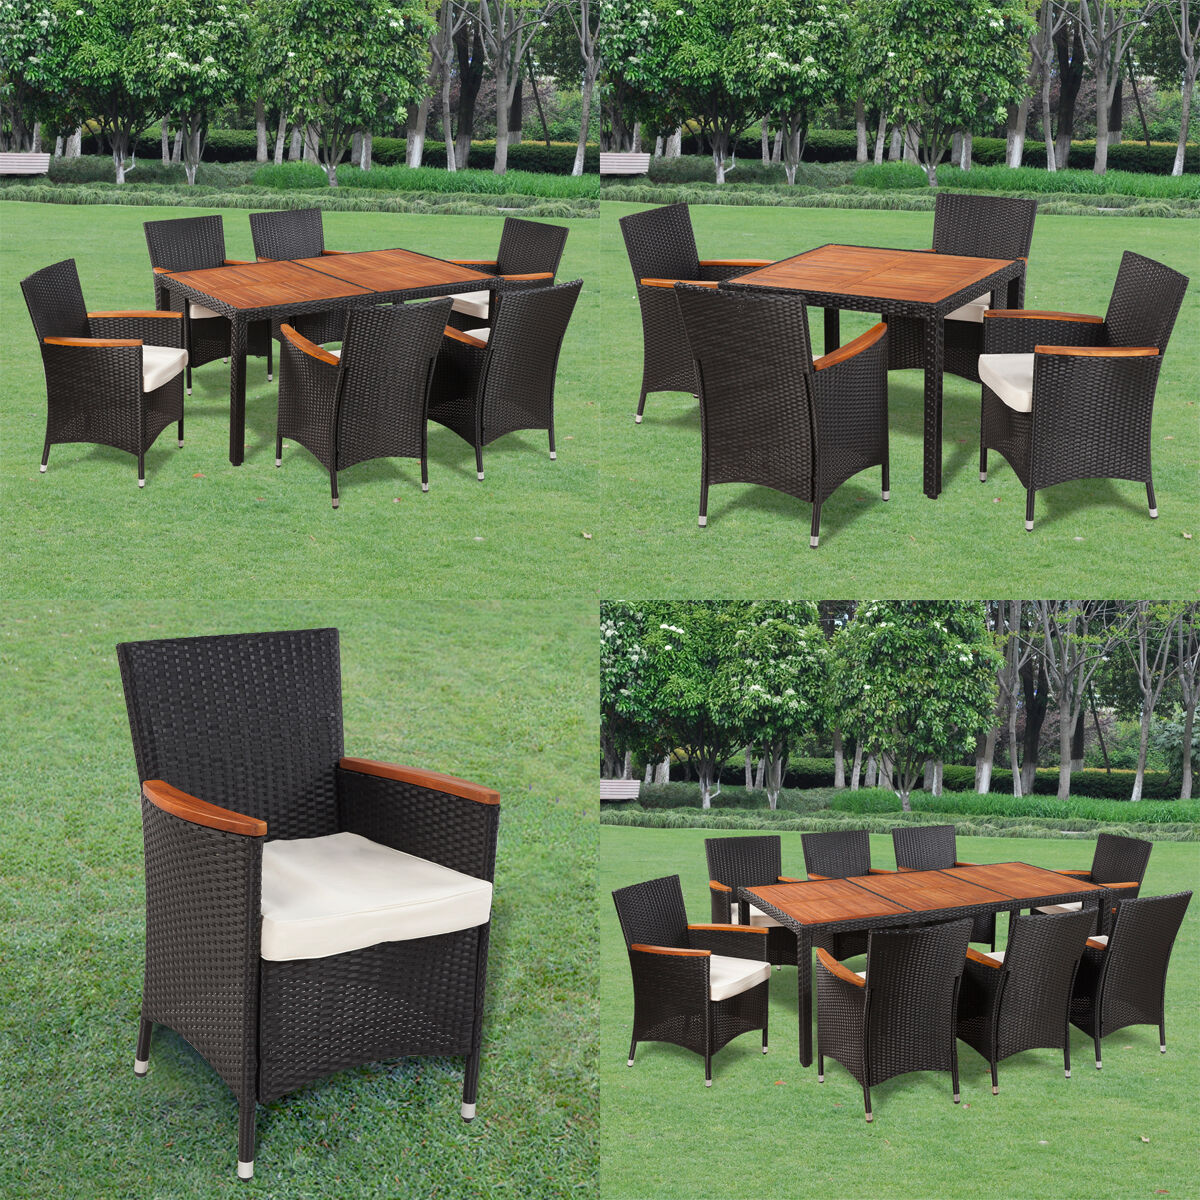 poly rattan gartenm bel gartengarnitur holz sitzgruppe essgruppe tisch st hle eur 212 99. Black Bedroom Furniture Sets. Home Design Ideas